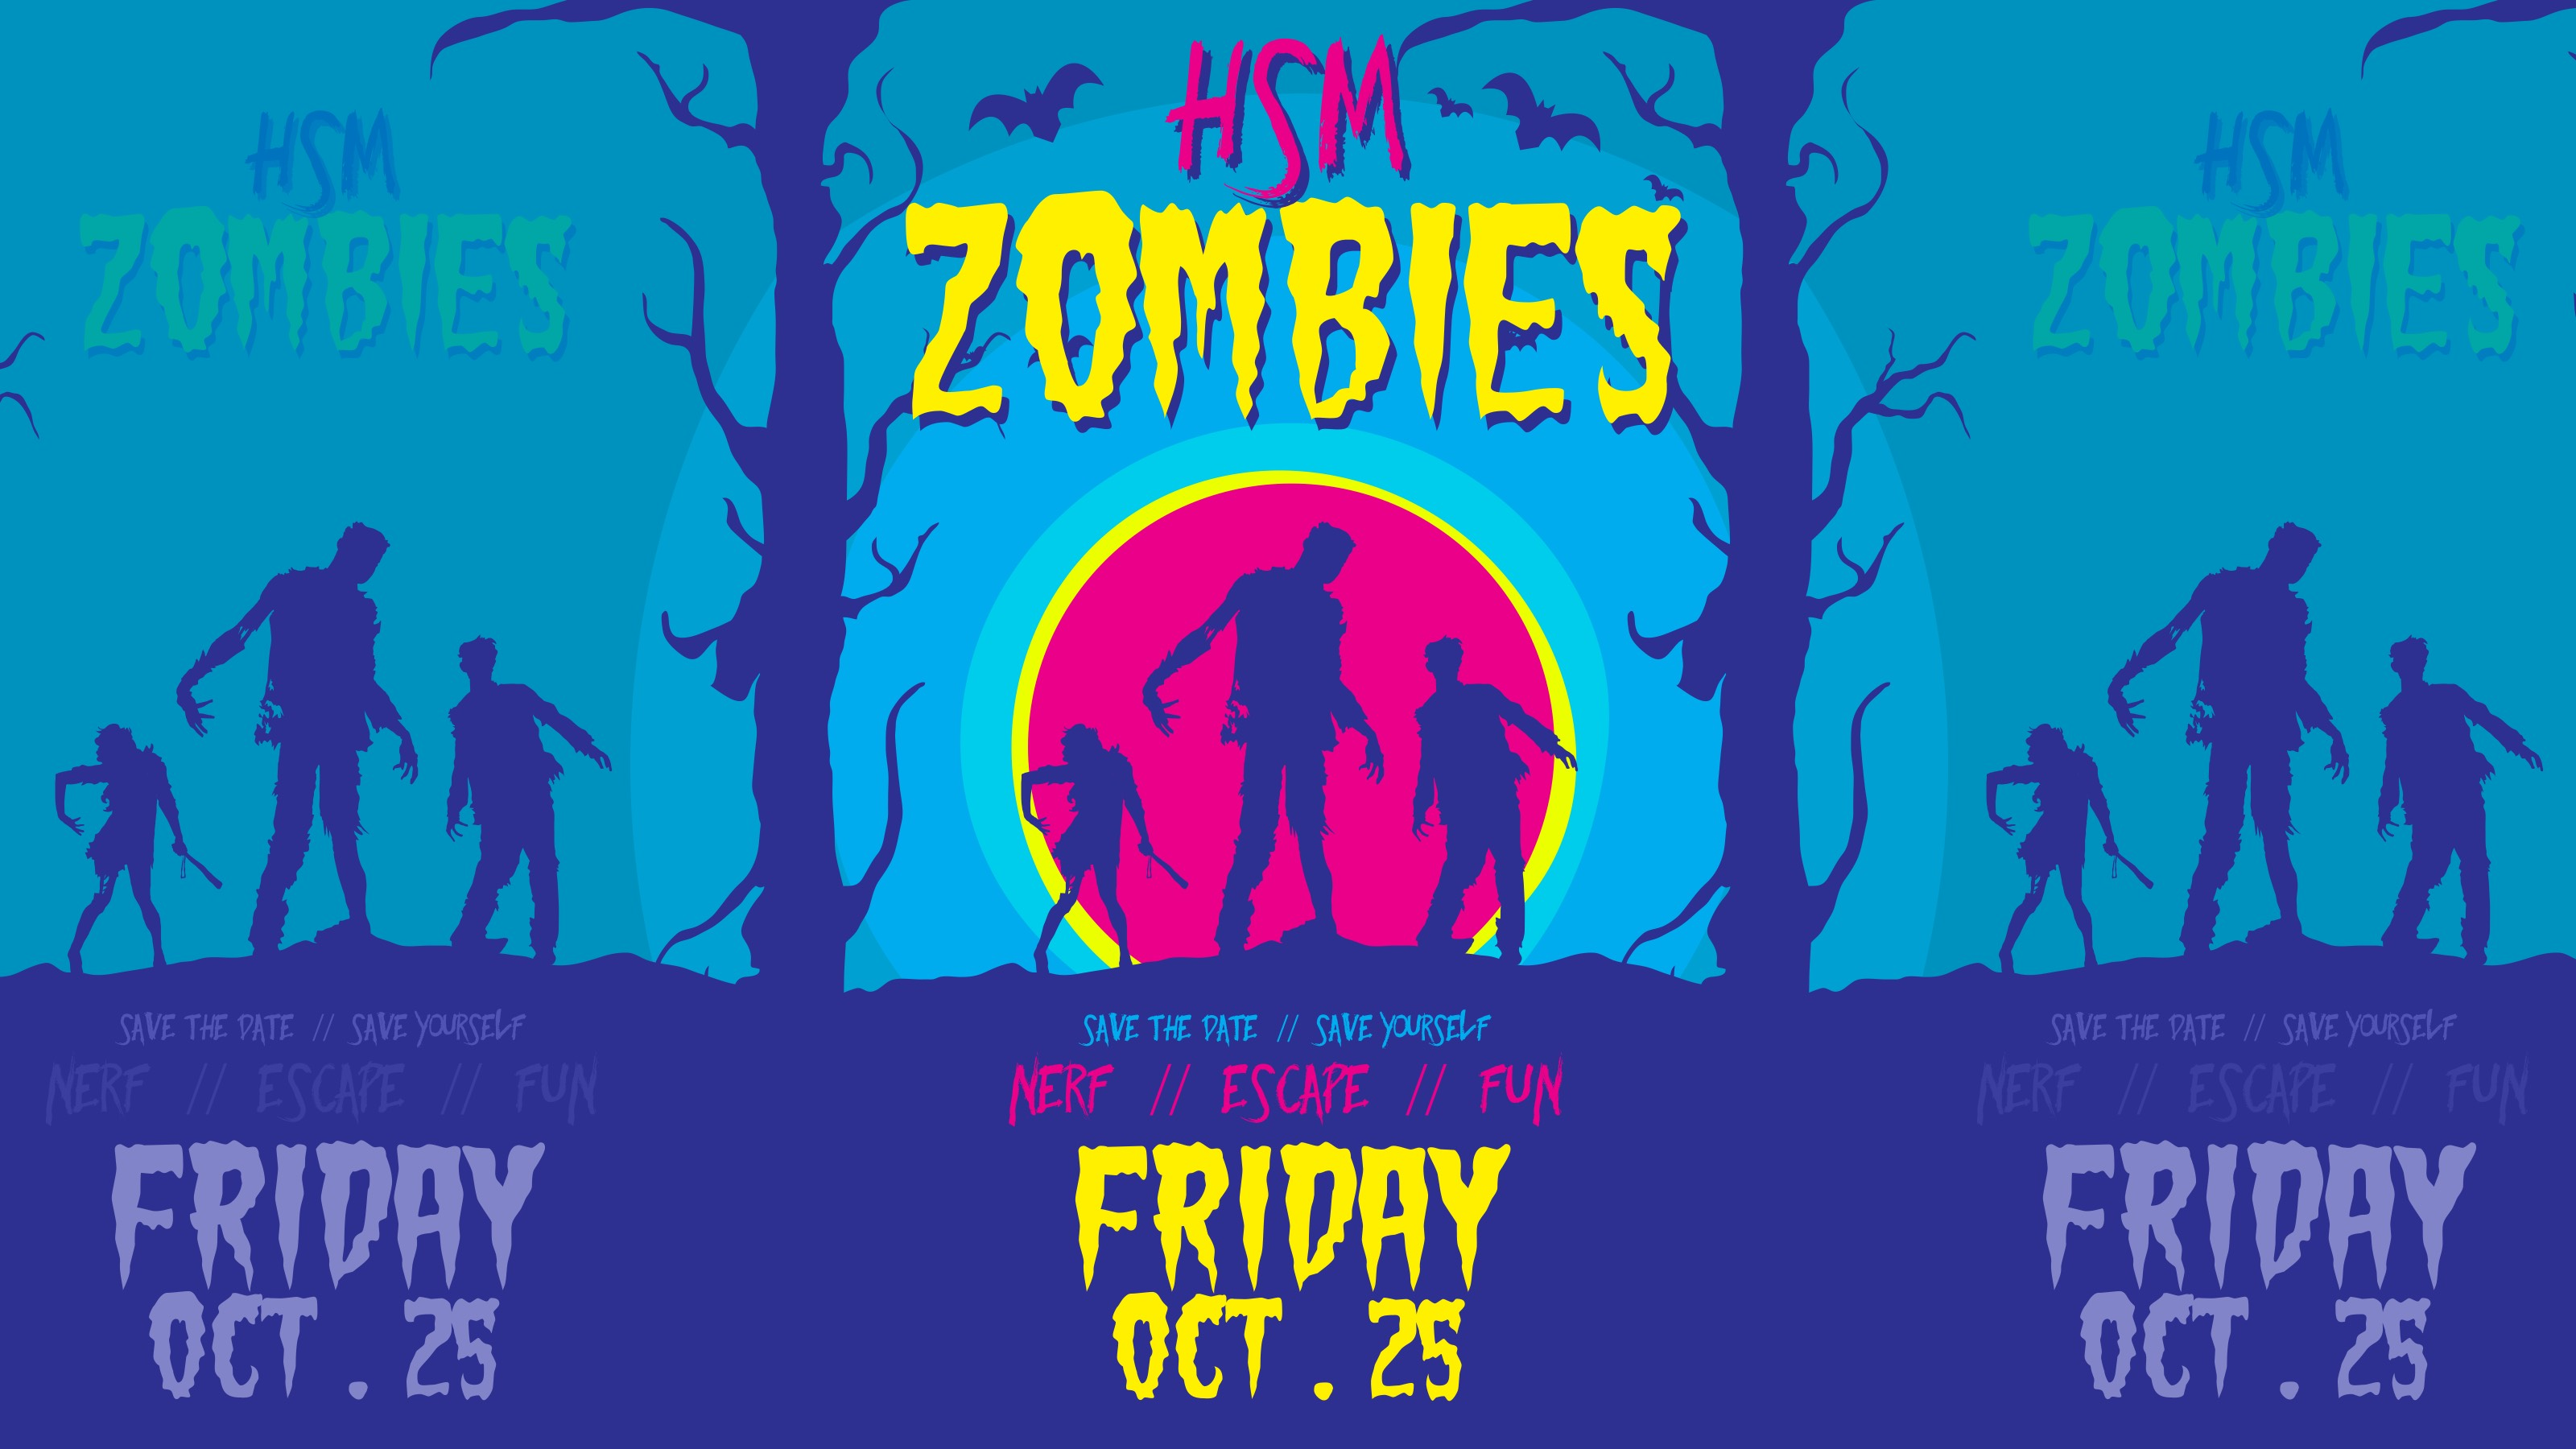 Image: HSM Zombies